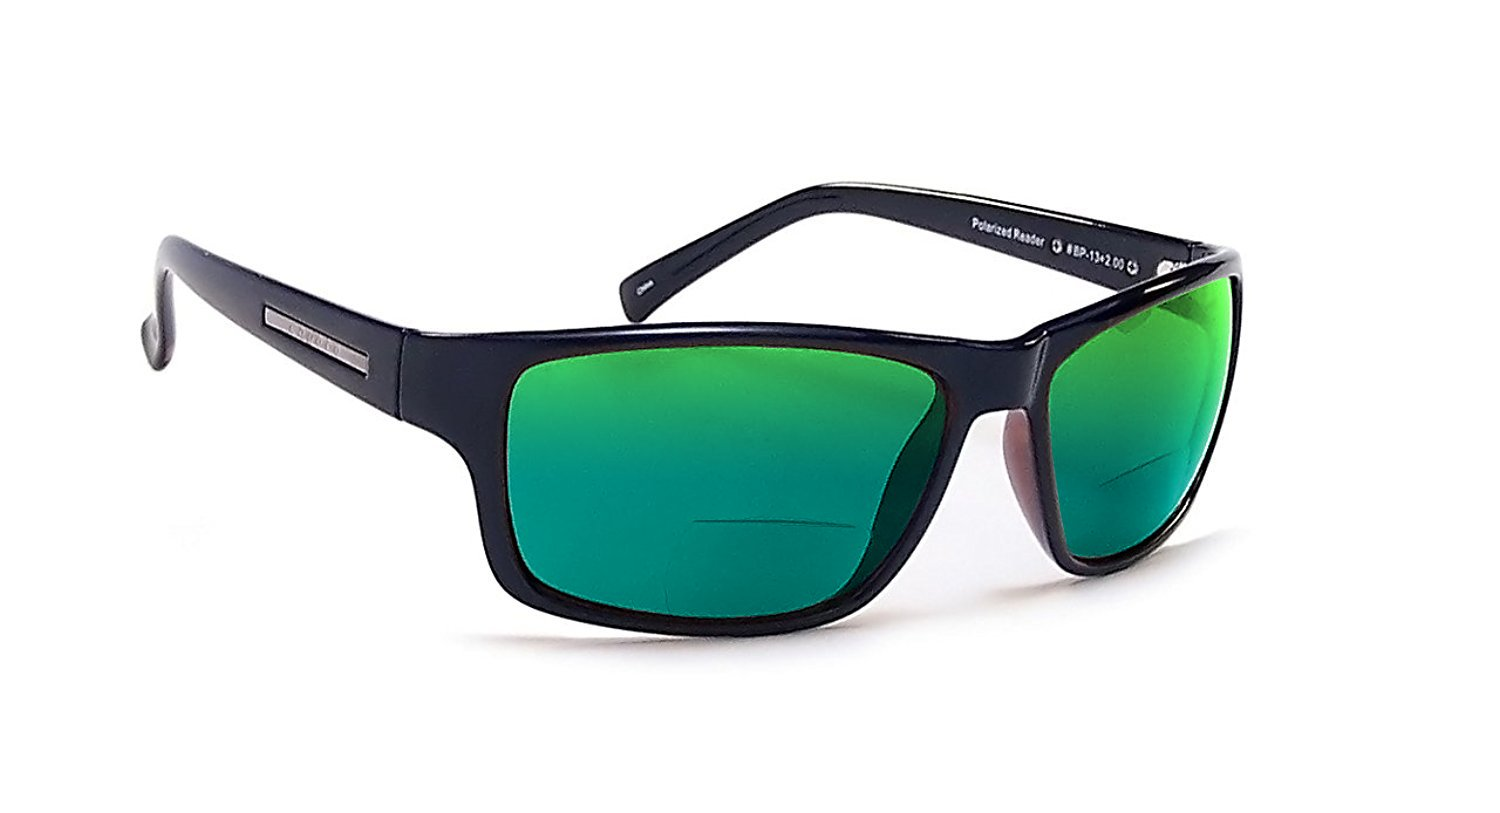 Coyote Eyewear BP-13 Polarized Bi-Focal Reading Sunglasses in Black w/Green Mirror Lens +1.50 by Coyote